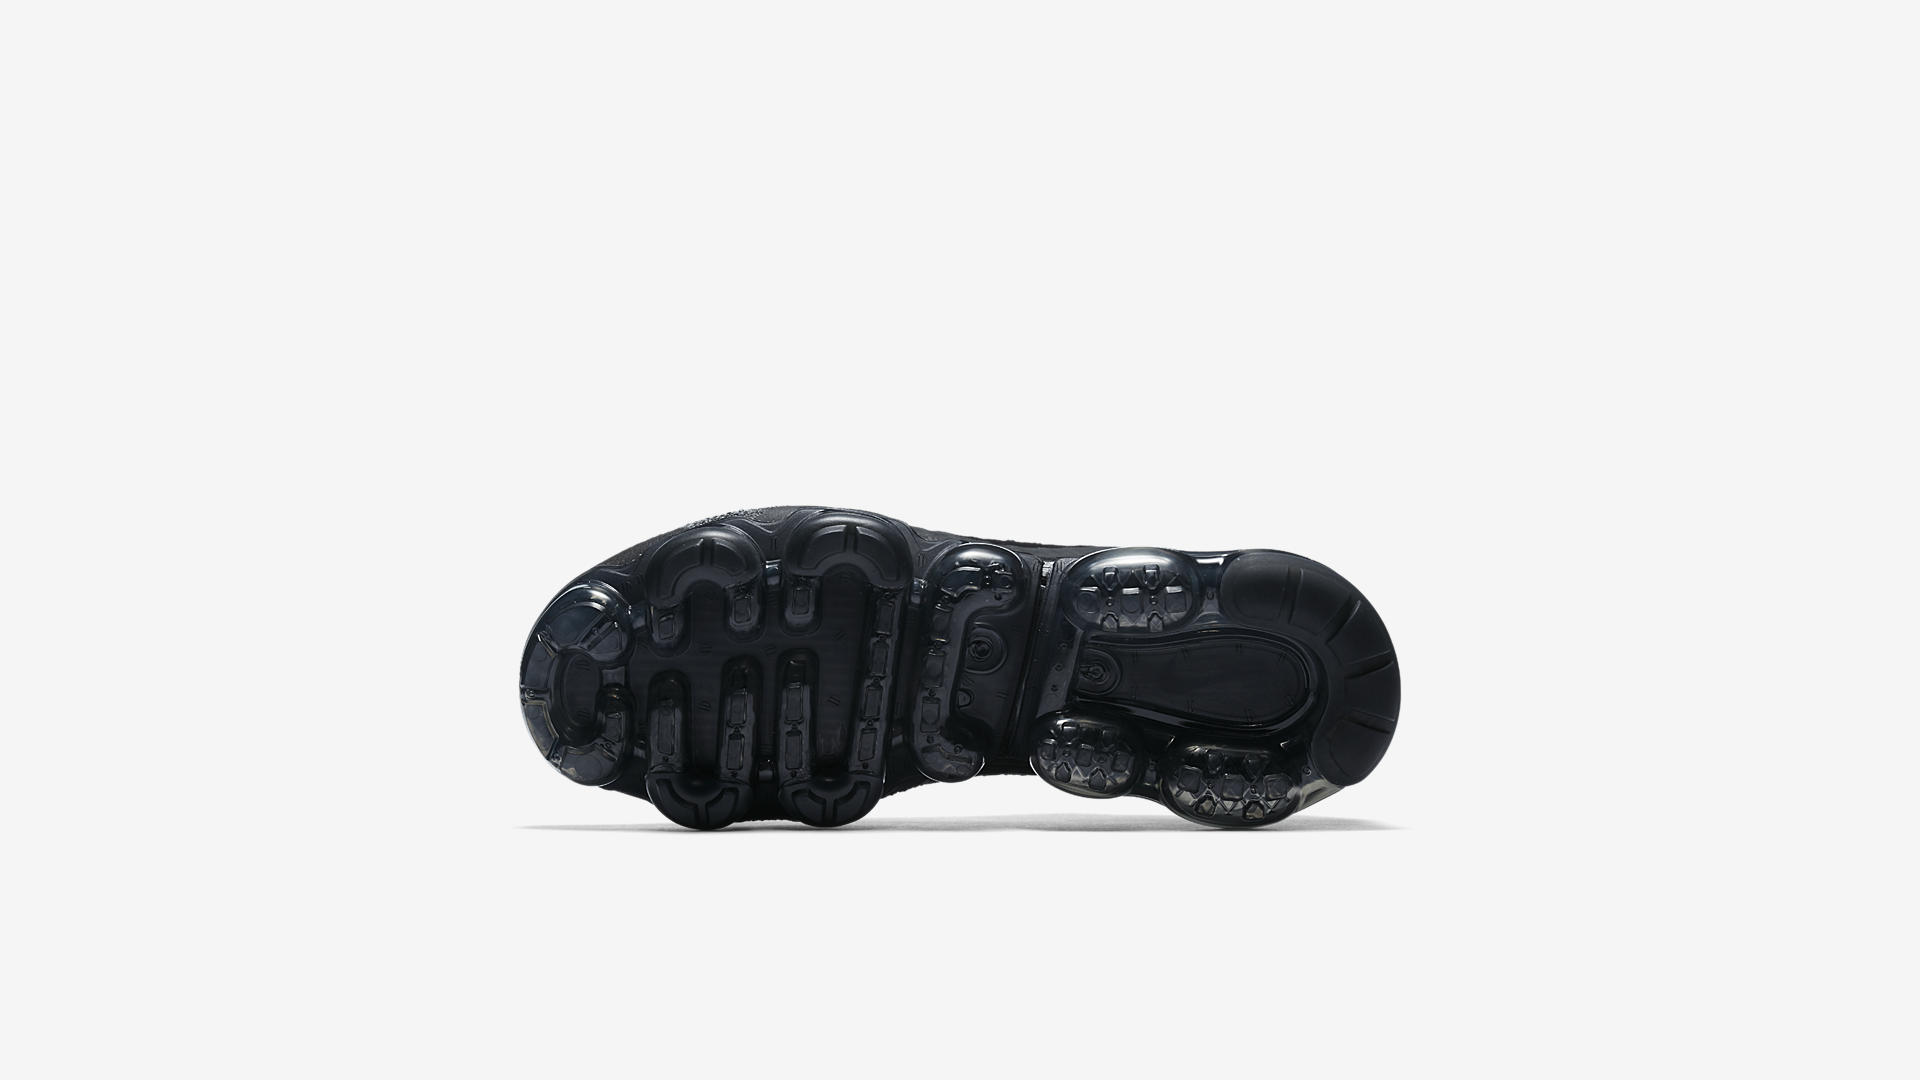 Nike Air Vapormax Triple Black 849558 007 2